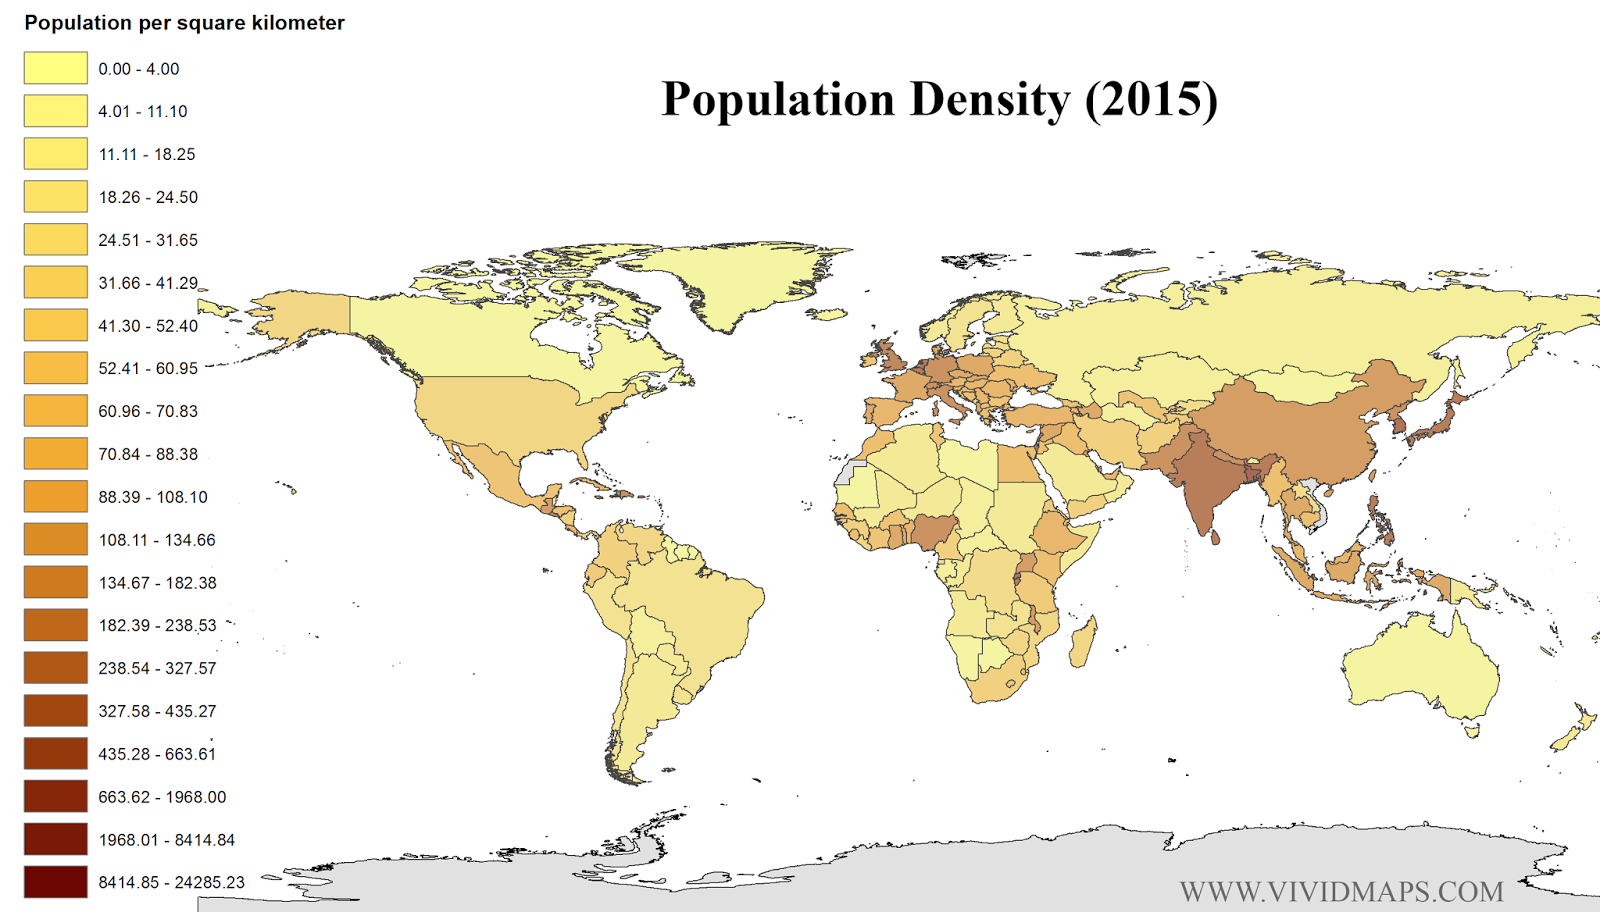 Population Density Population Pinterest - Australia population density map 2015